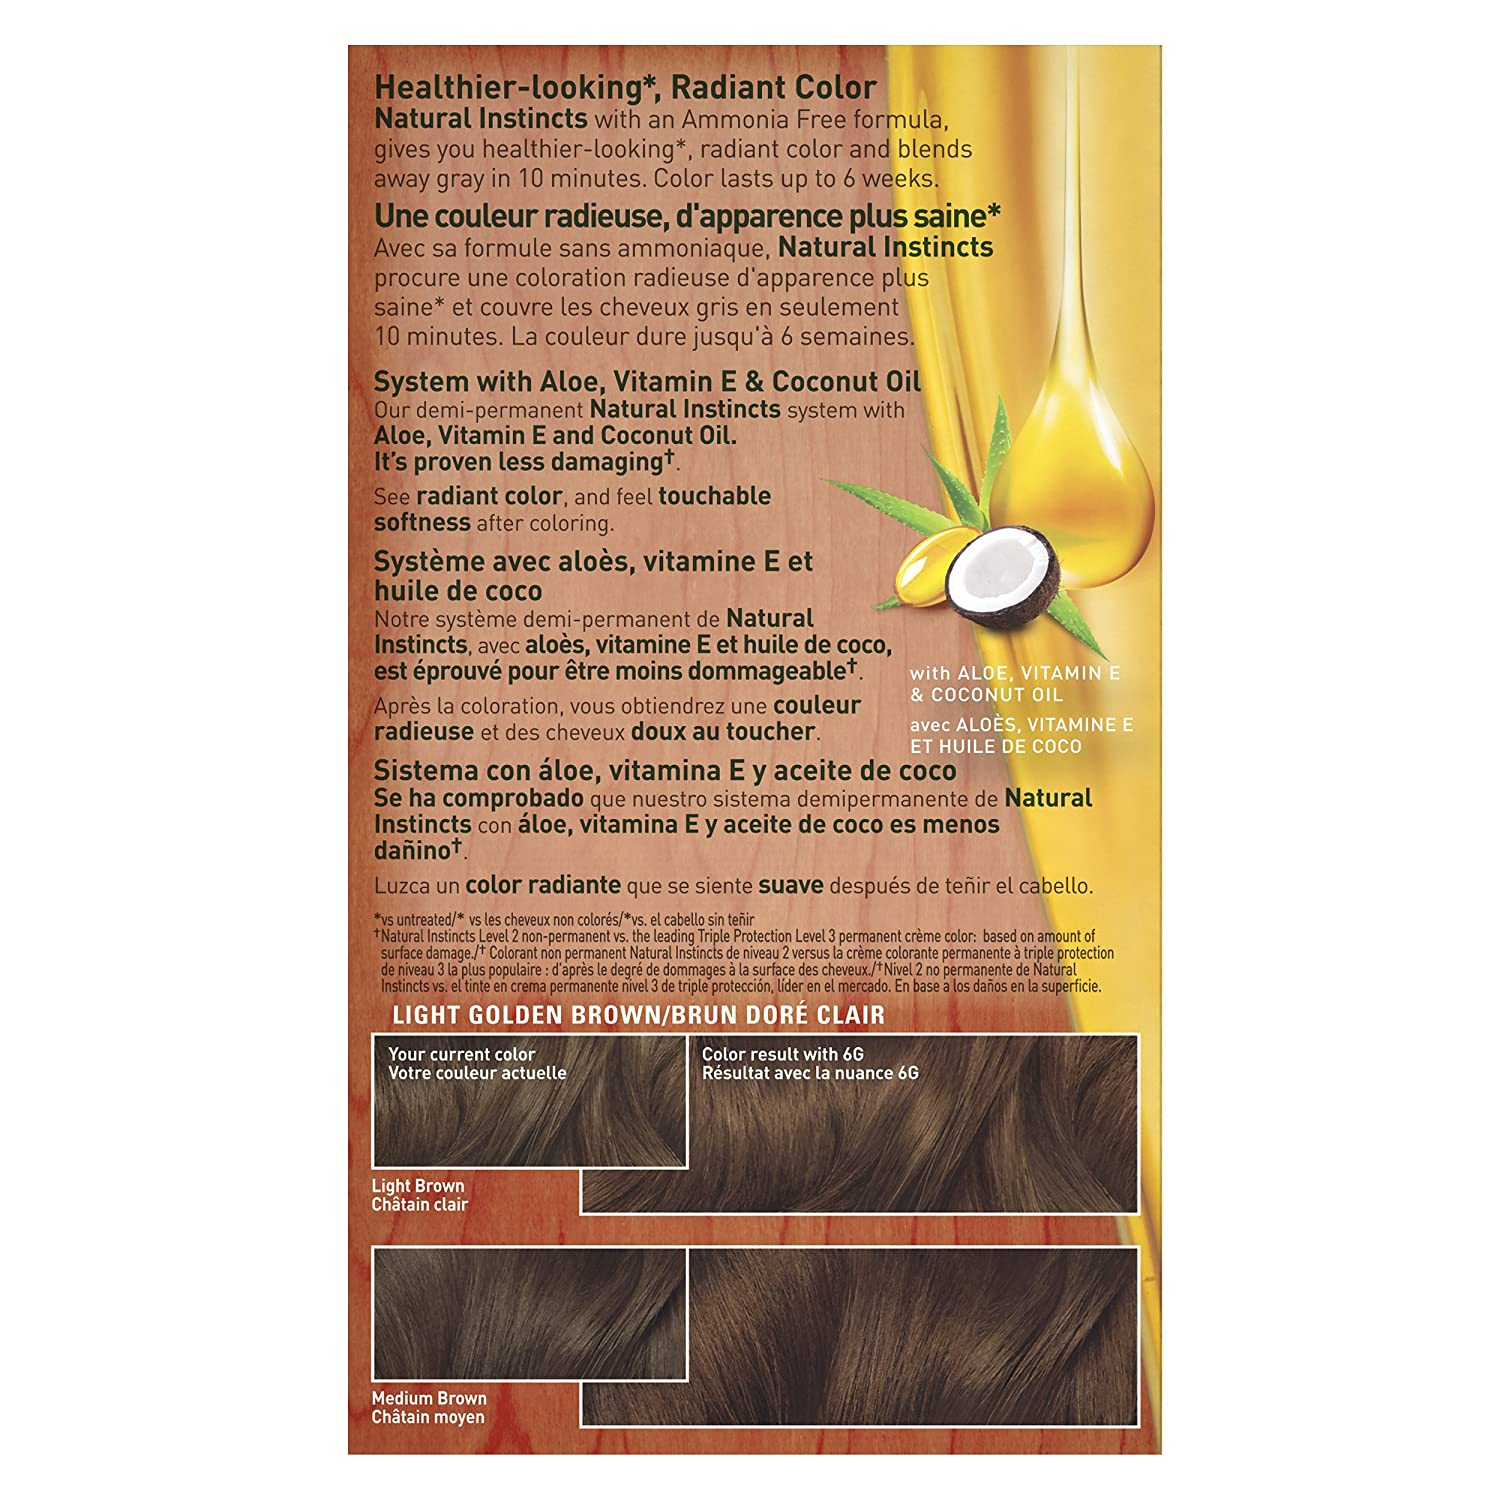 Amazon clairol natural instincts semi permanent hair color amazon clairol natural instincts semi permanent hair color kit pack of 3 6g 12 toasted almond light golden brown color ammonia free chemical nvjuhfo Images